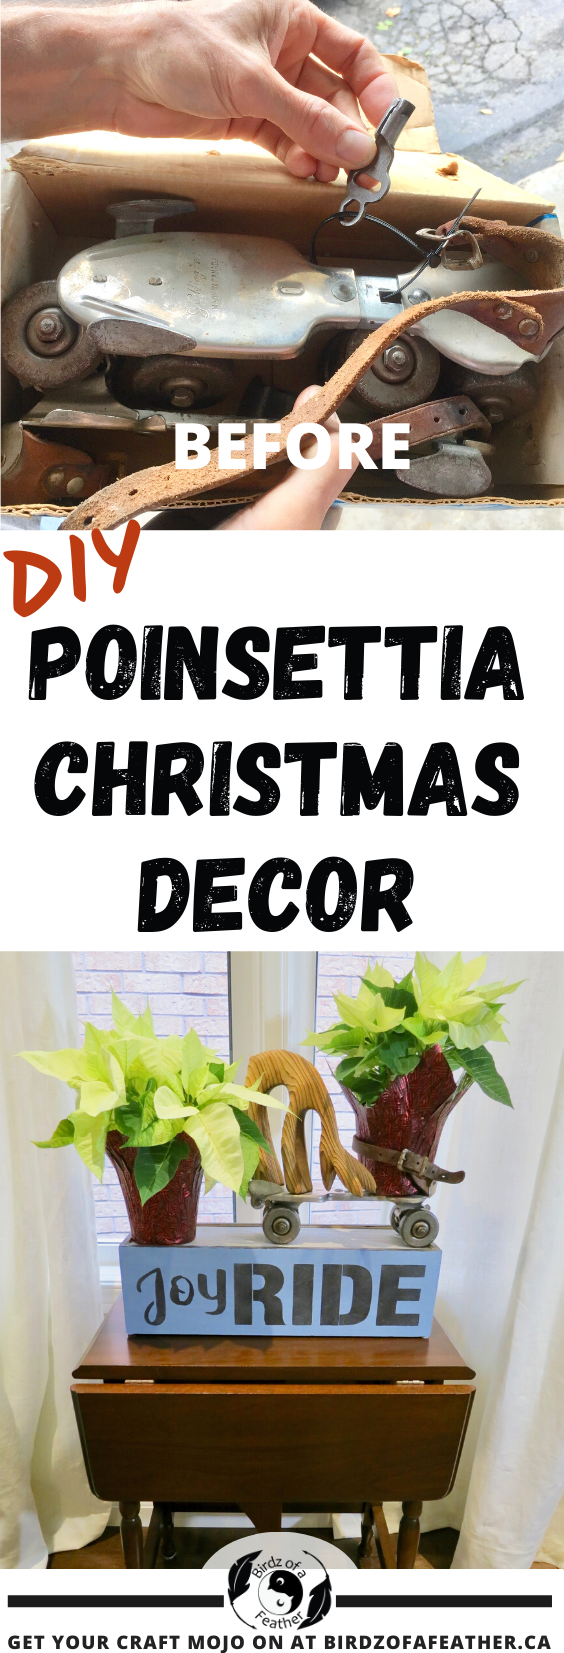 Looking for a fast and simple Christmas craft? This Poinsettia Christmas decor project would be it! And it all starts with an old wine box! Birdz of a Feather | christmas decorations | christmas decor | christmas plant decor | christmas house plants | christmas plant decor | christmas plant ideas | planter ideas | diy planter table | indoor planter display | indoor plant ideas | upcycling ideas | roller skate upcycle | wine box upcycle | wine box crafts | wine box ideas | wine box ideas projects | Milk Paint | Habitat ReStore | Habitat ReStore Project | Habitat ReStore DIY